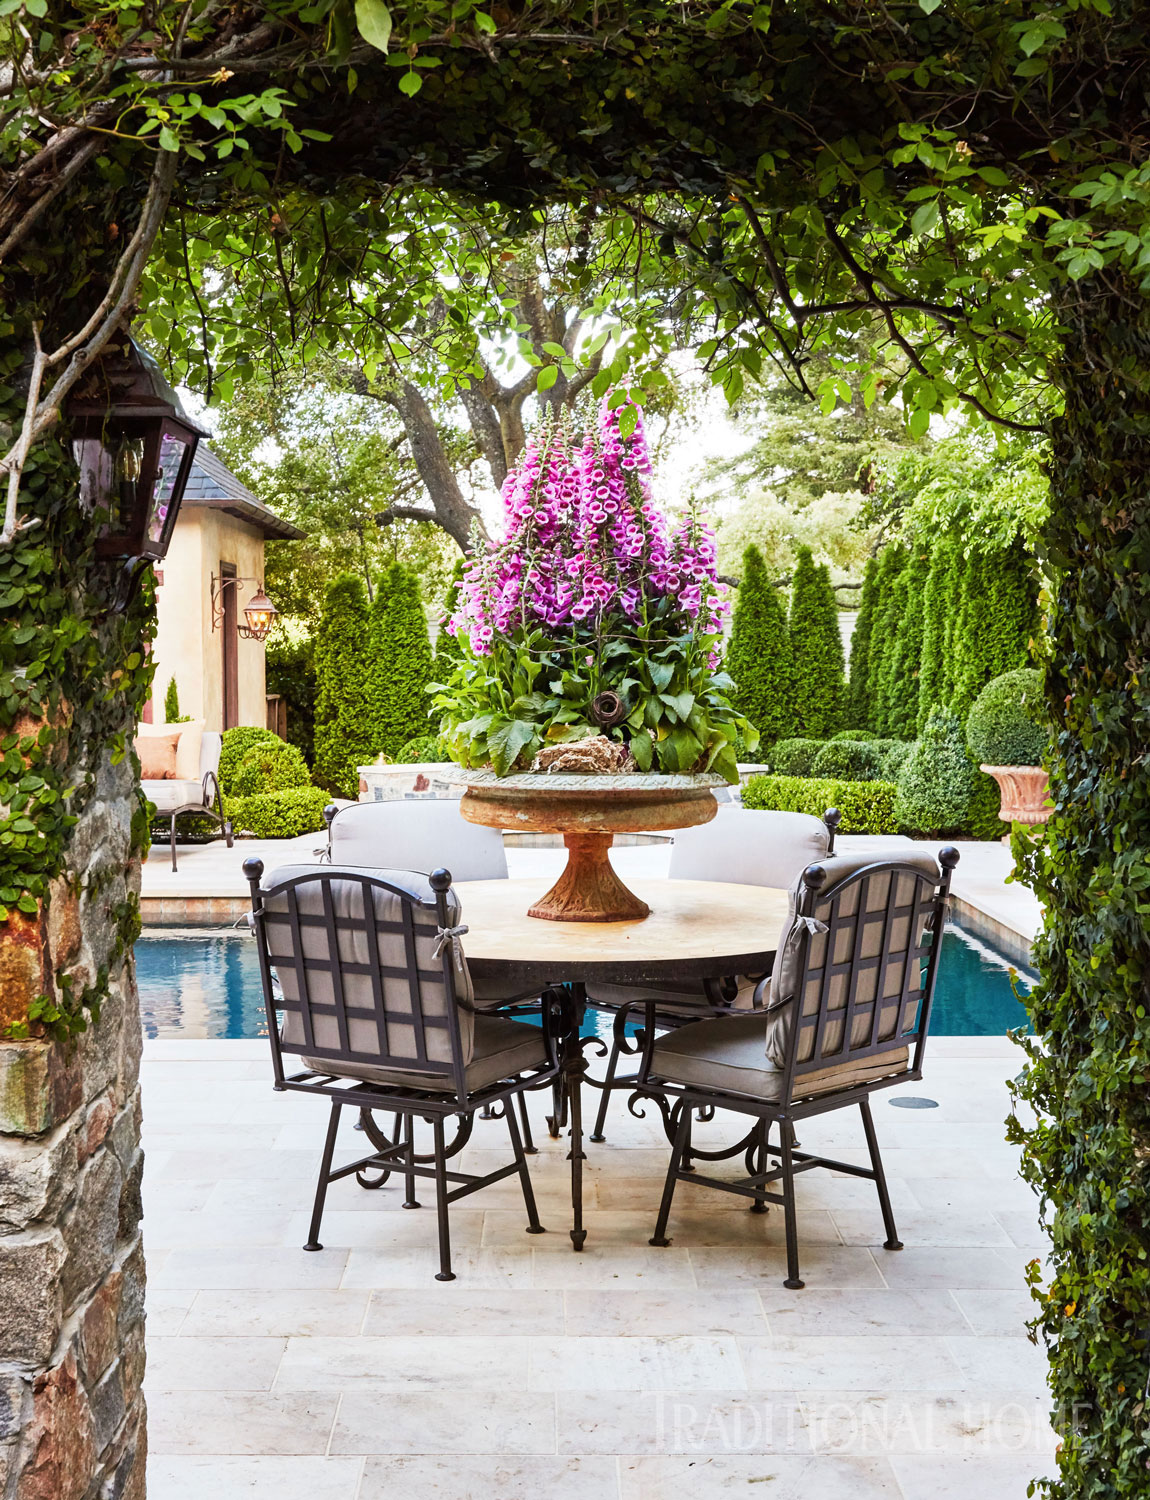 home trends-outdoor living-dining-Teresa Smiles-Gilliam-THlorettajwillishome trends 2018, outdoor livinghome trends 2018, outdoor livinghome trends 2018, outdoor livinghome trends 2018, outdoor livinghome trends 2018, outdoor livinghome trends 2018, outdoor livinghome trends 2018, outdoor living